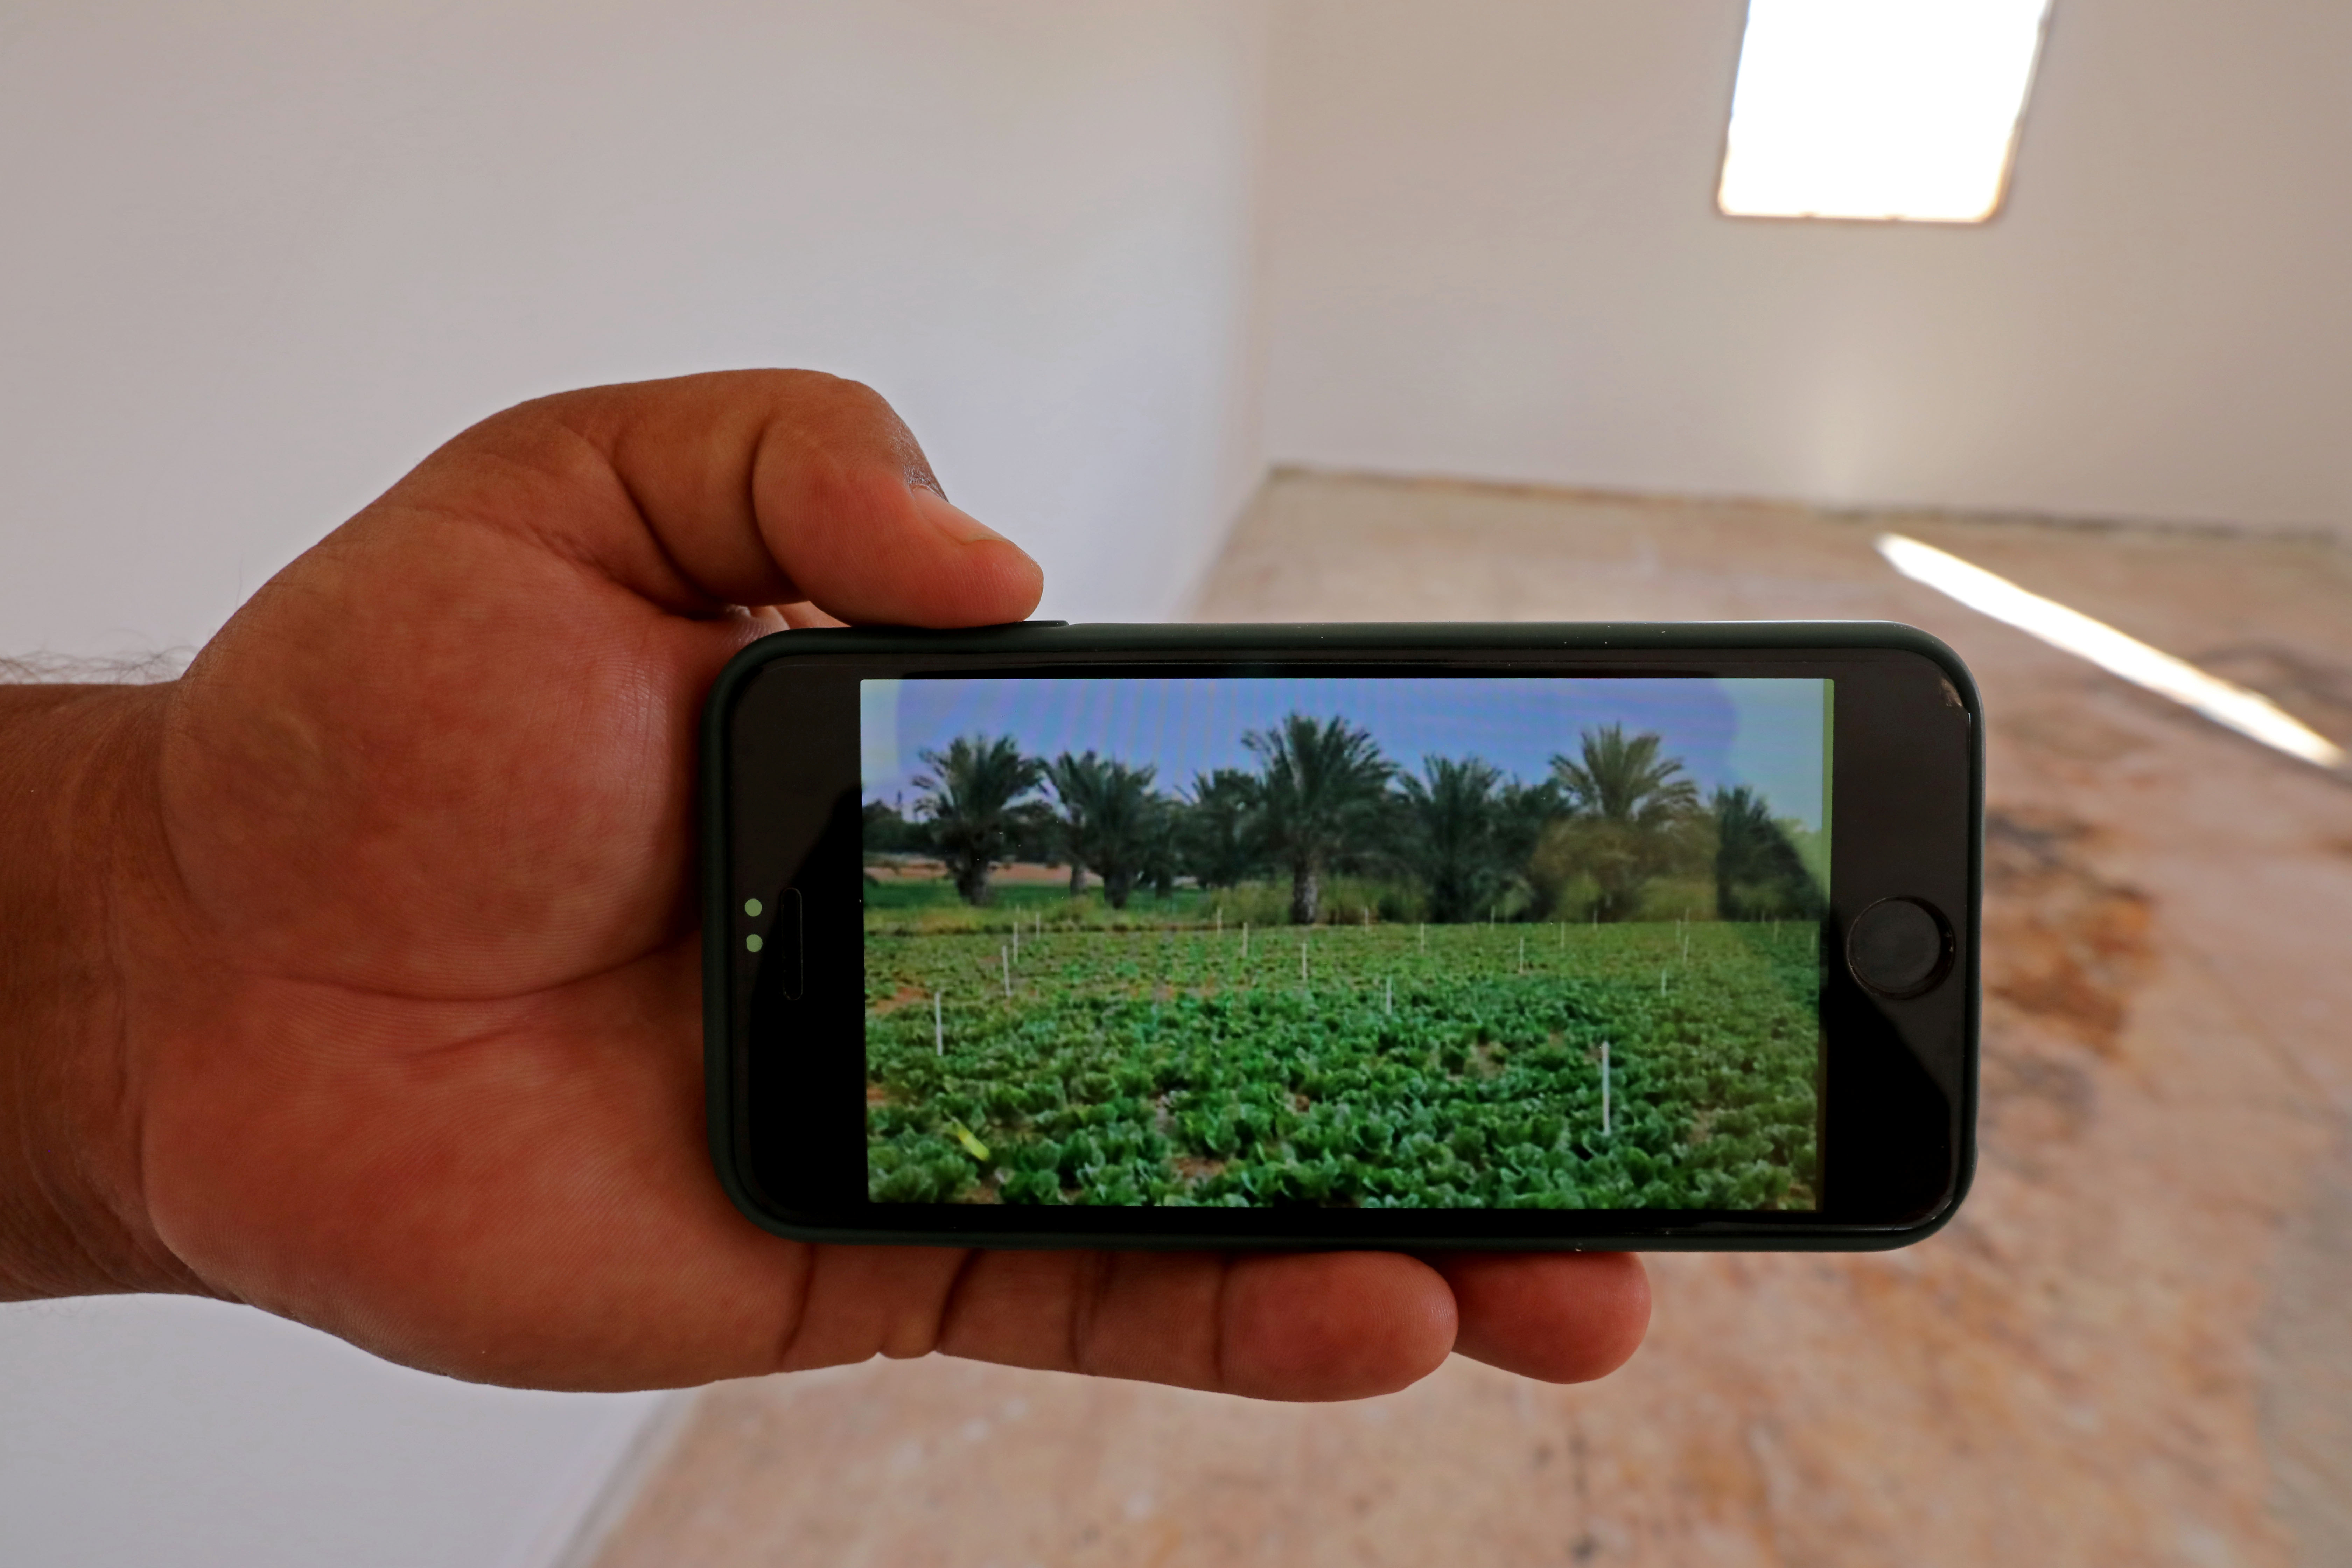 A member of Bouzid family shows a picture on his phone of of their farm, in Ain Zara, Tripoli, Libya, October 28, 2020. Picture taken October 28, 2020. REUTERS/Hazem Ahmed - RC2CSJ9VSCDX